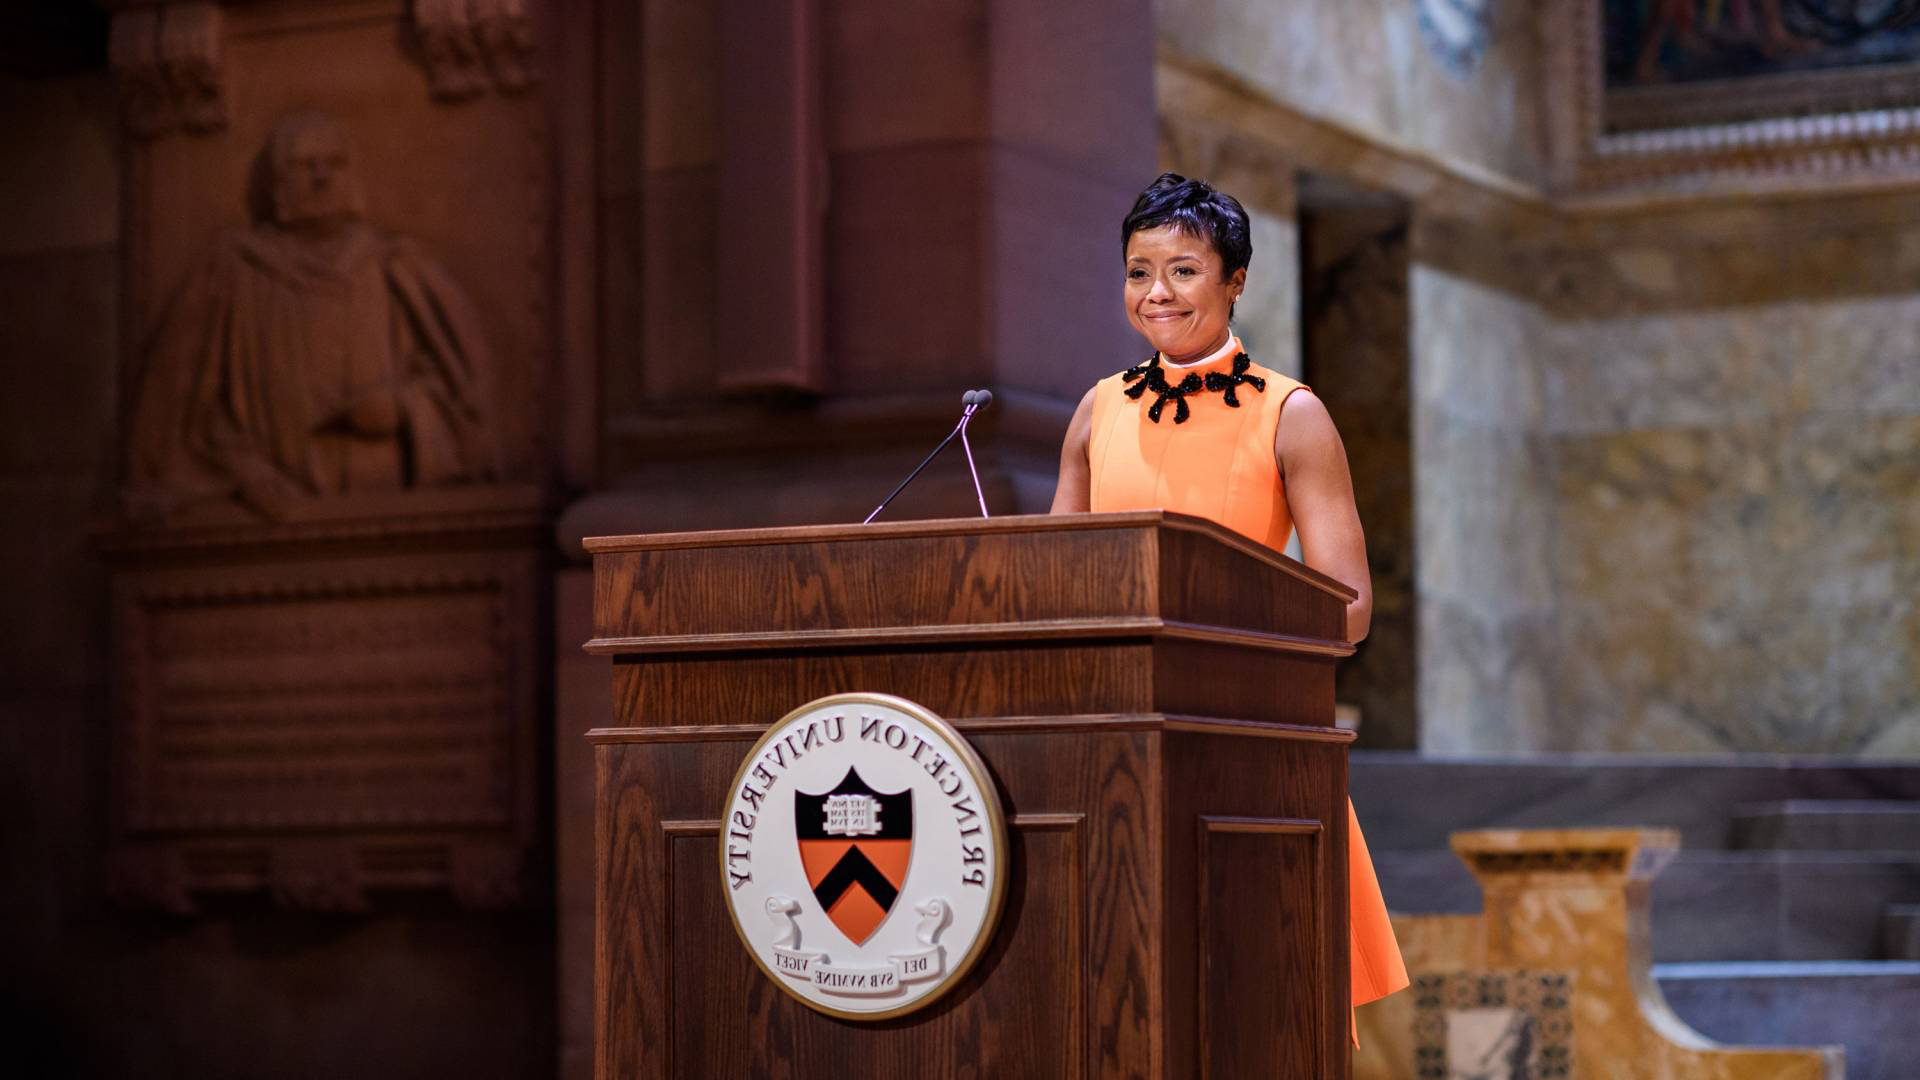 Mellody Hobson at a podium